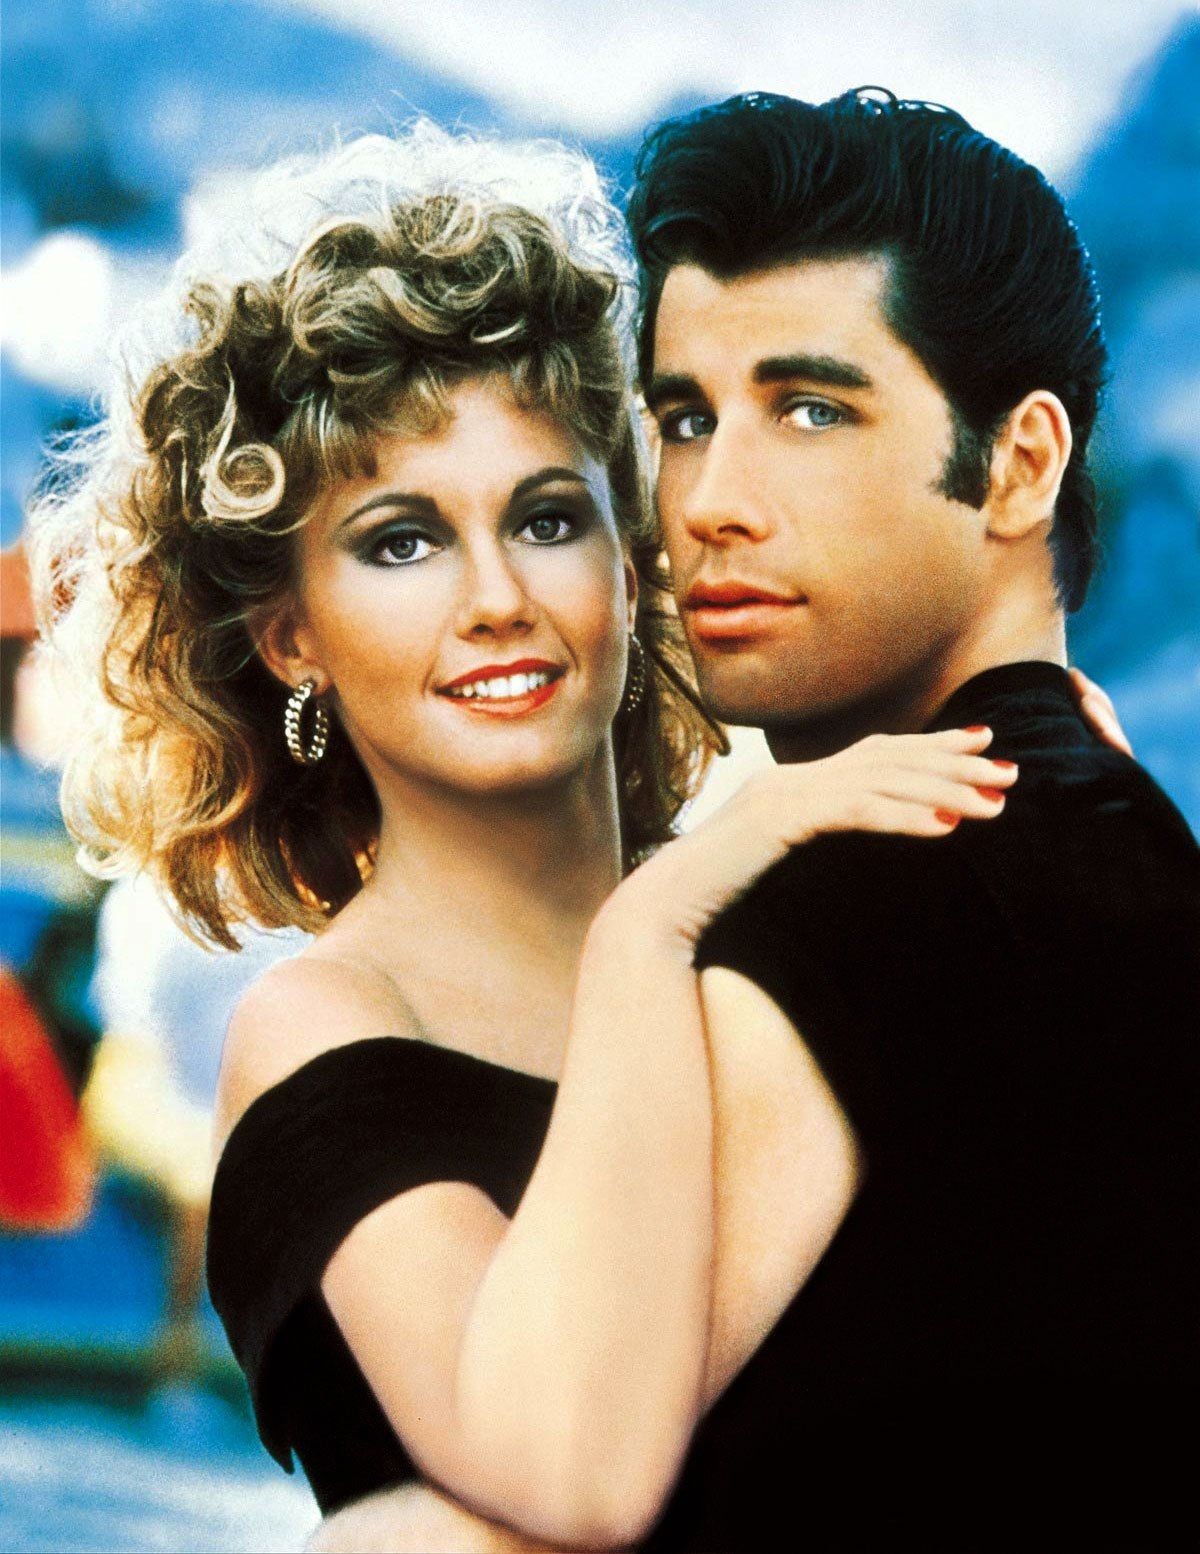 Sandy & Danny from Grease (Olivia Newton-John & John Travolta)